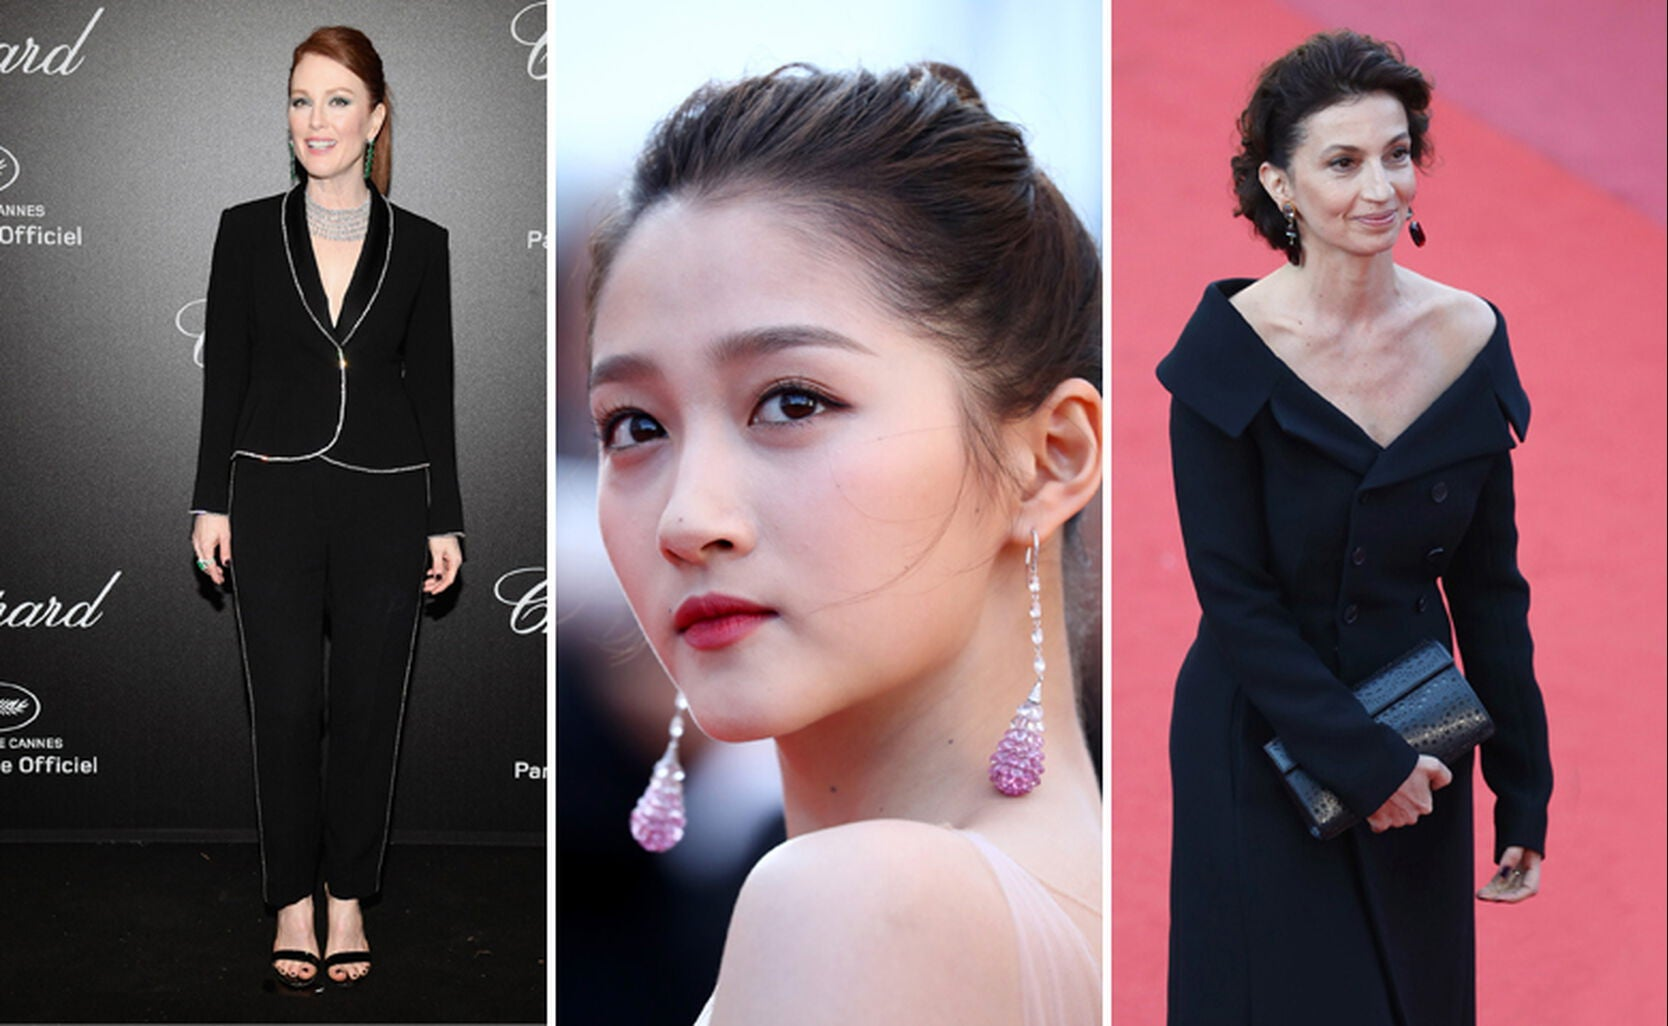 Julianne Moore, Gua Xiaotong and Audrey Azoulay